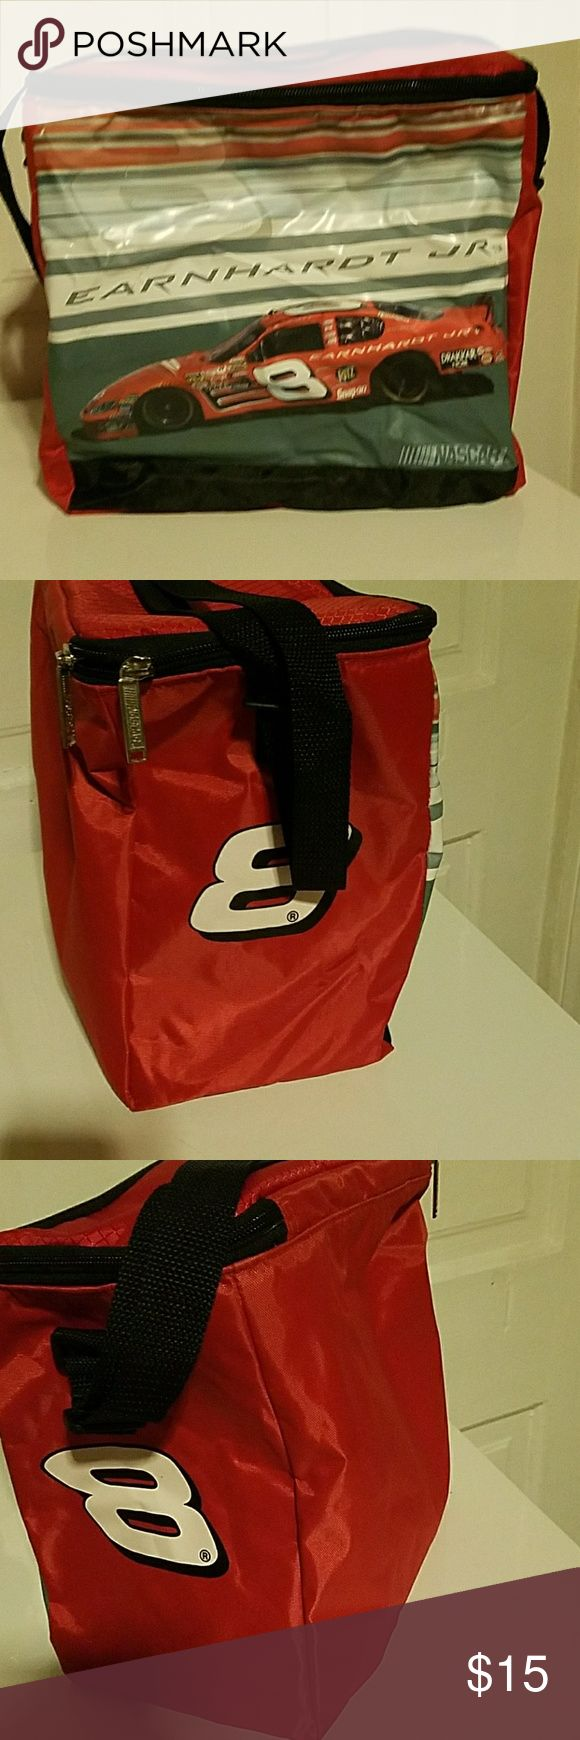 👝🚘🏁 NASCAR Dale Jr. #8 cooler NASCAR Dale Jr. #8 cooler bag with black adjustable shoulder strap and 2 NASCAR zipper pulls. Back unzips at top. #8 is on both sides. Nothing on back.  NOT FADED. SMOKE FREE home. Original owner, me. In used condition. Inside is kind of wrinkly looking, but it's a cooler and it is Dale Jr #8. Dale Jr. is set to retire soon from racing which if u r a NASCAR fanatic this is old news to you. :) Nascar Bags